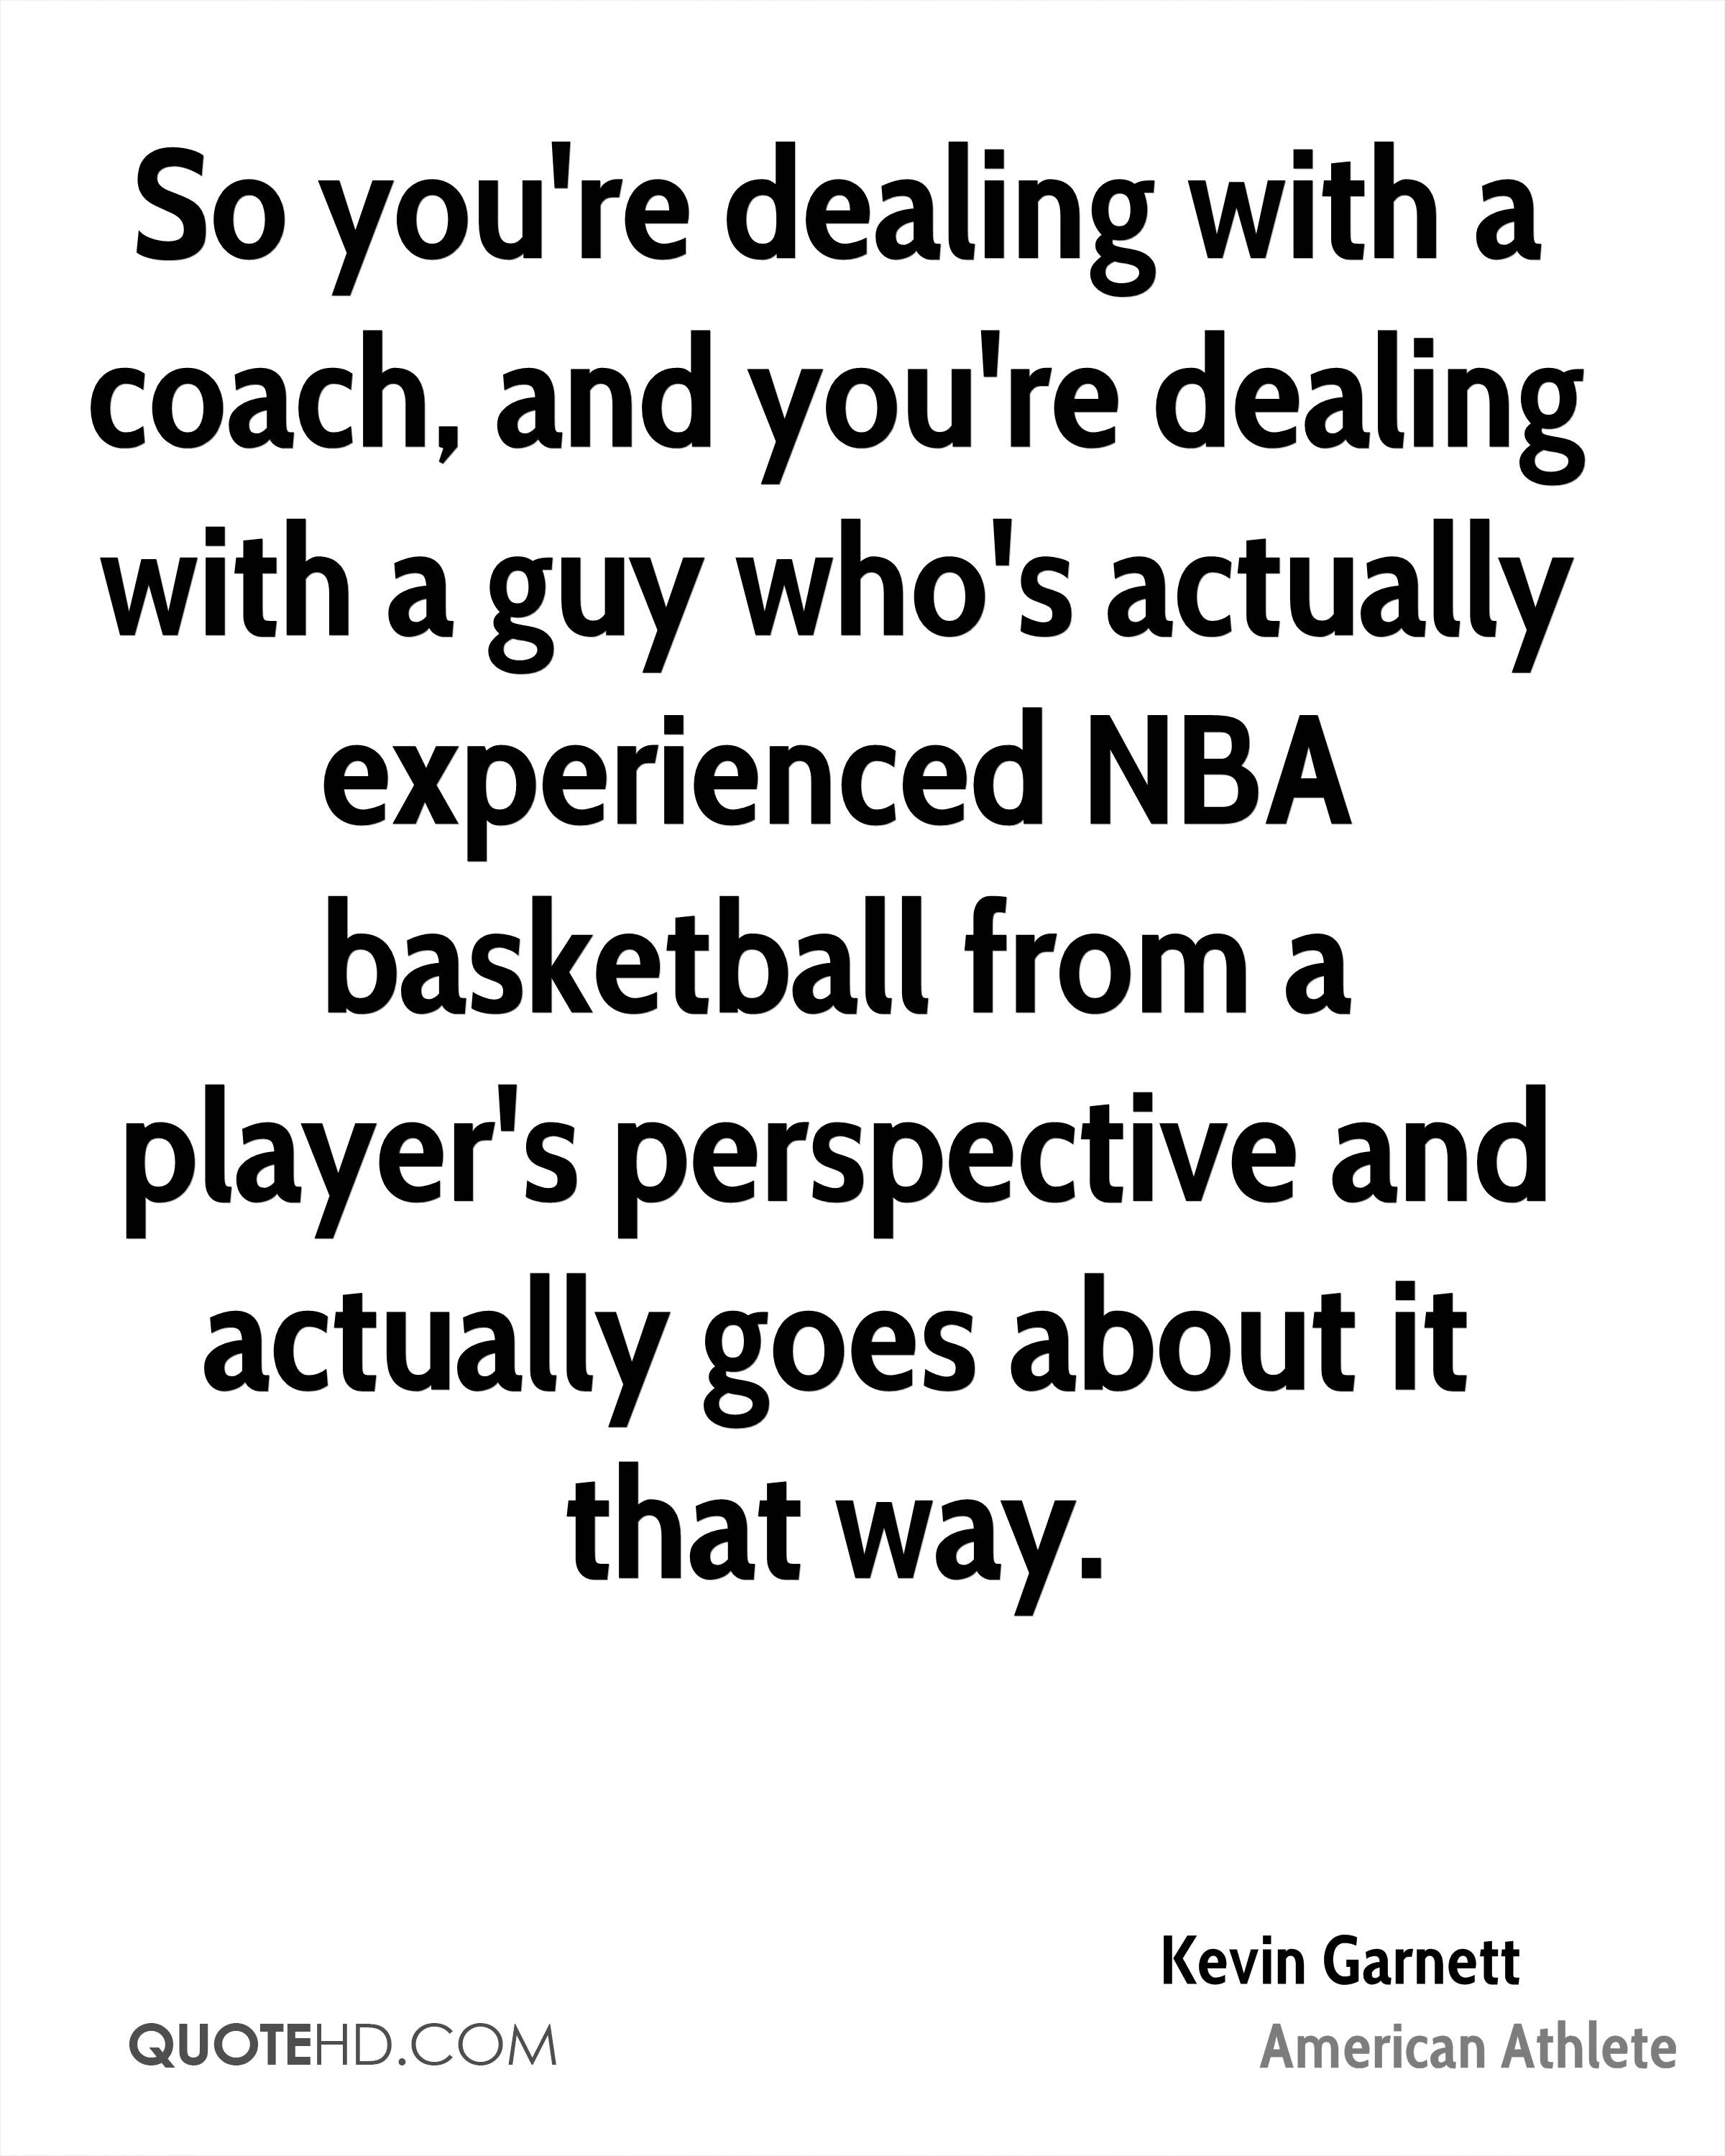 So you're dealing with a coach, and you're dealing with a guy who's actually experienced NBA basketball from a player's perspective and actually goes about it that way.